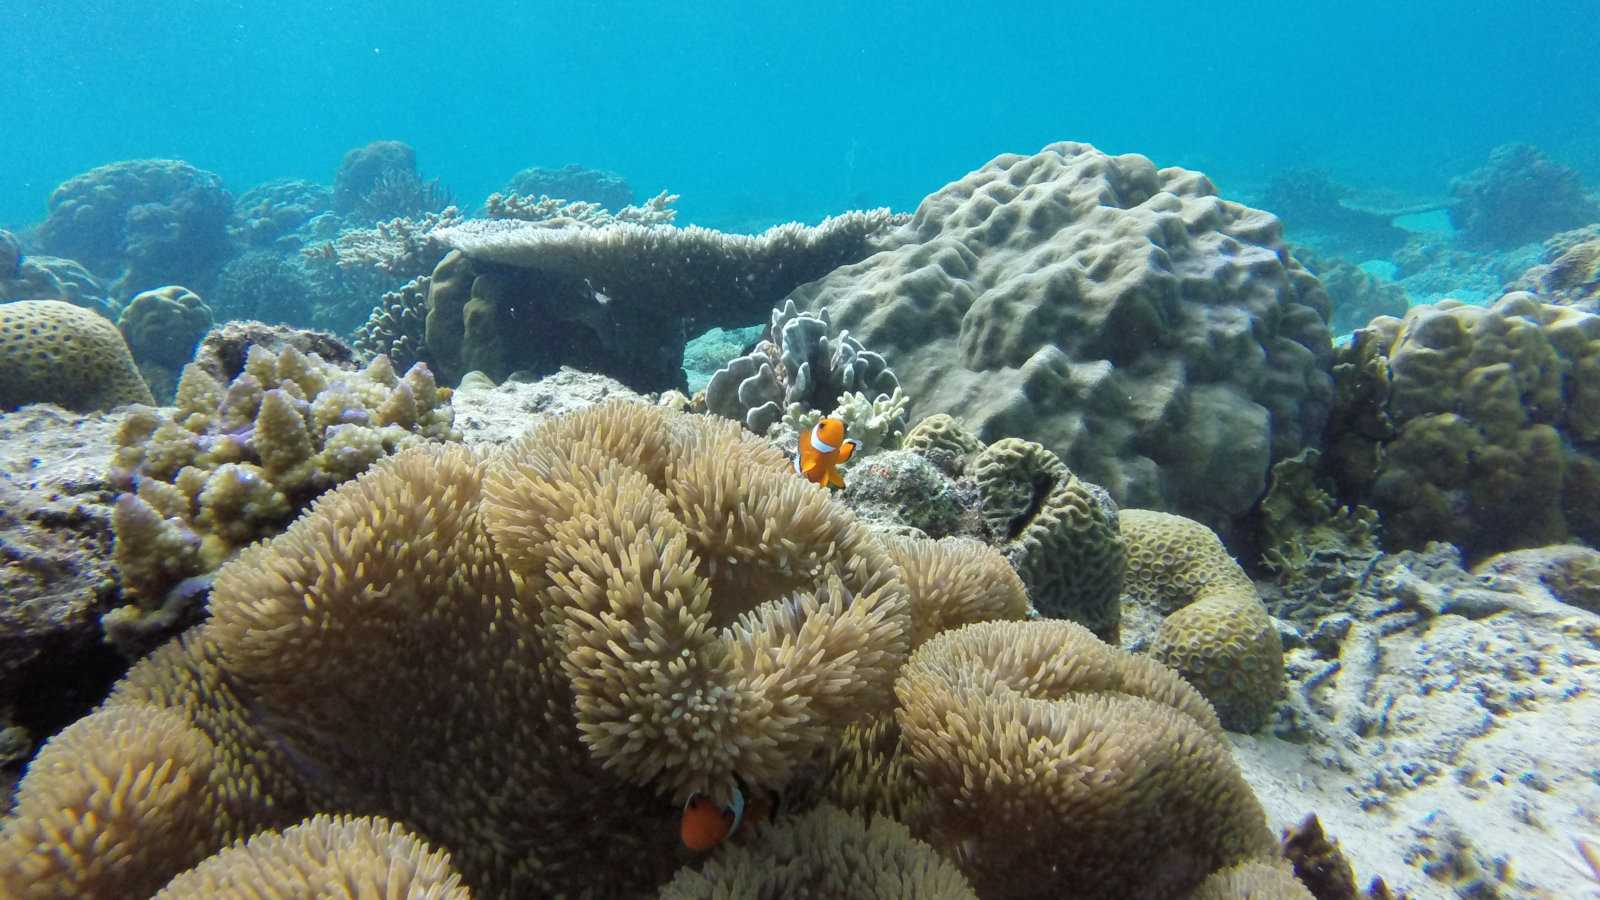 Tour C from El Nido is the best for snorkeling and seeing sea-life like clownfish!